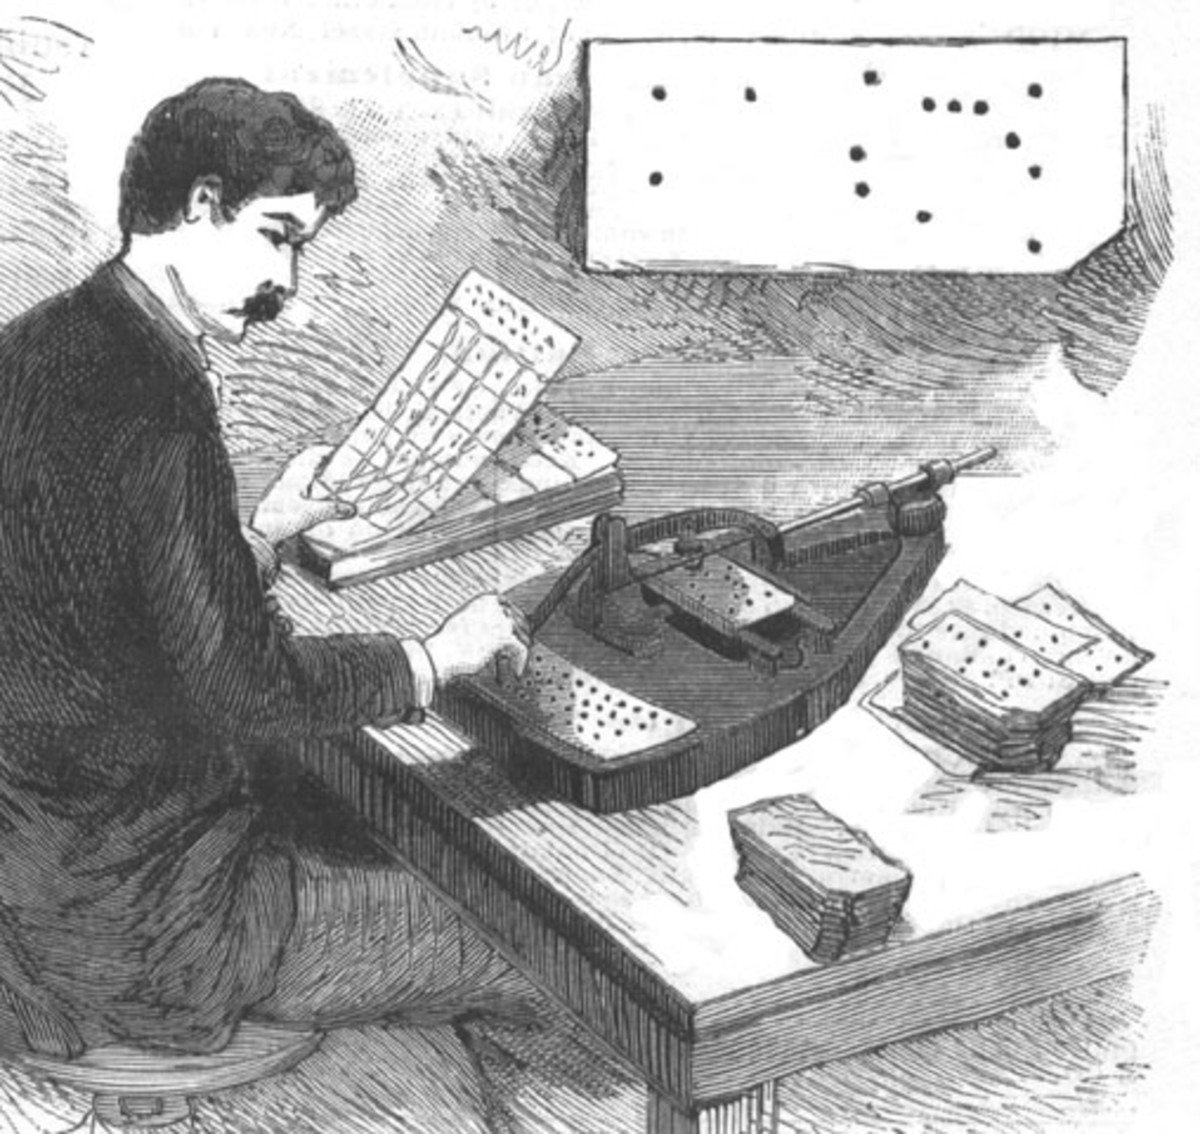 Hollerith's pantograph-inspired hole punch machine was used in the 1890 census.